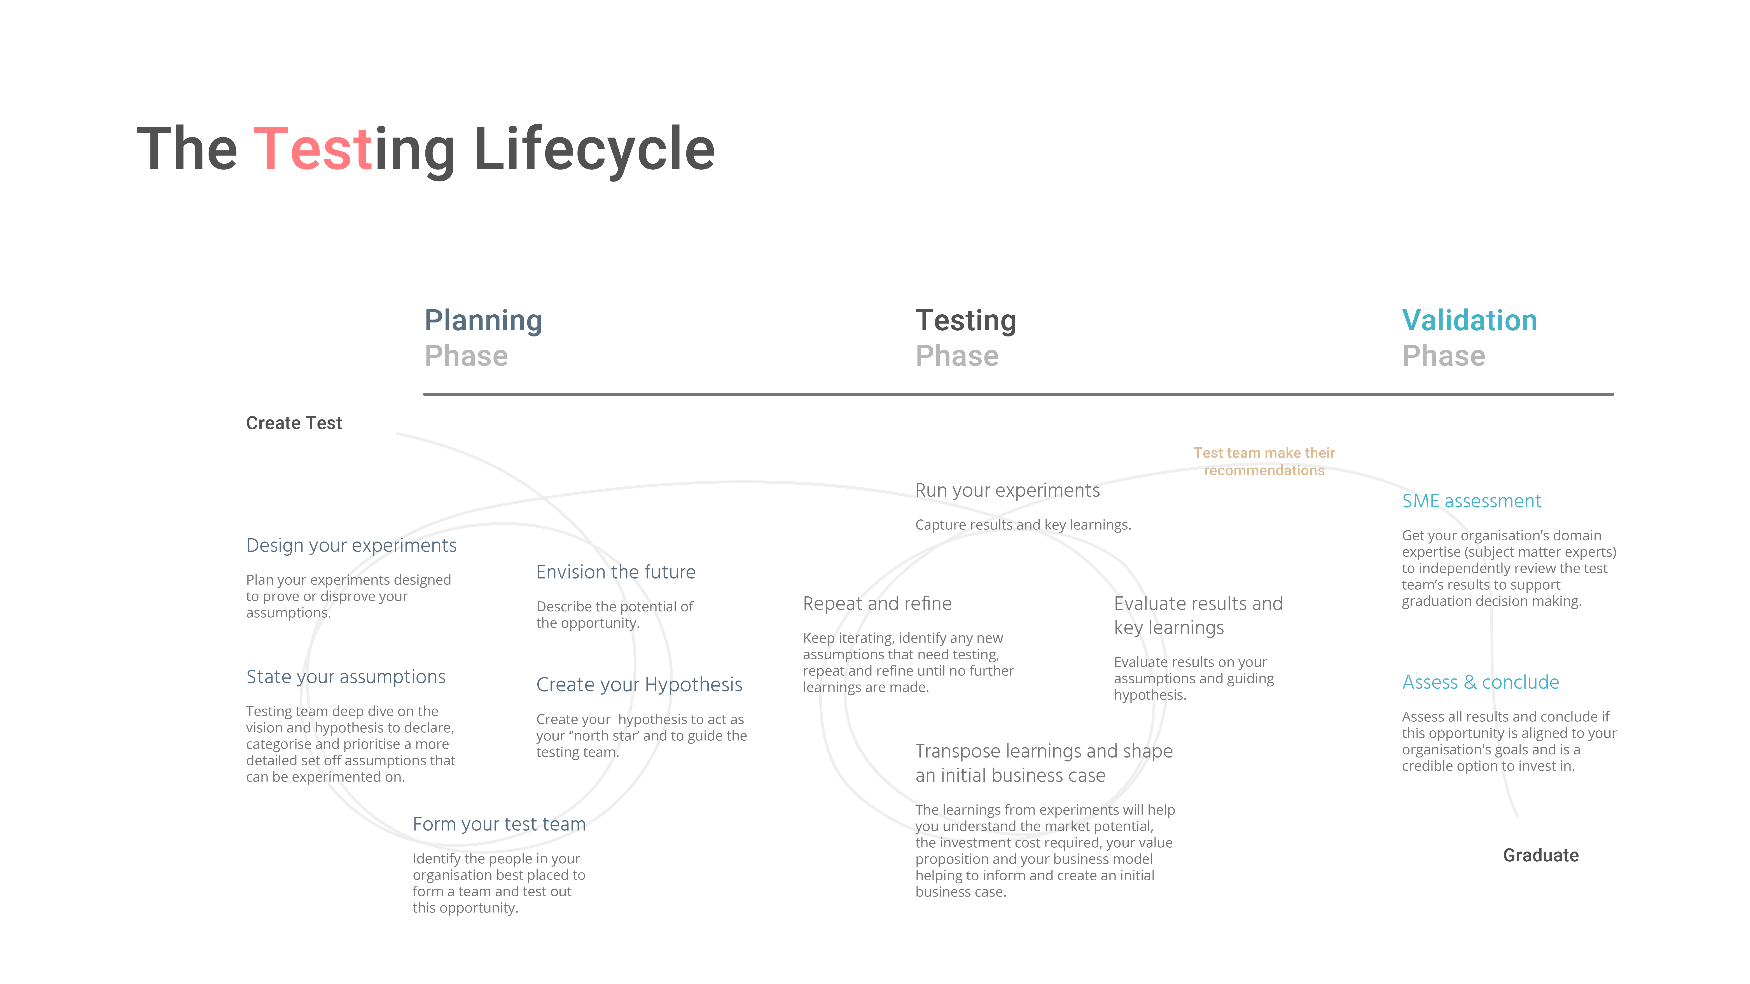 Image showing the testing lifecycle - three phases